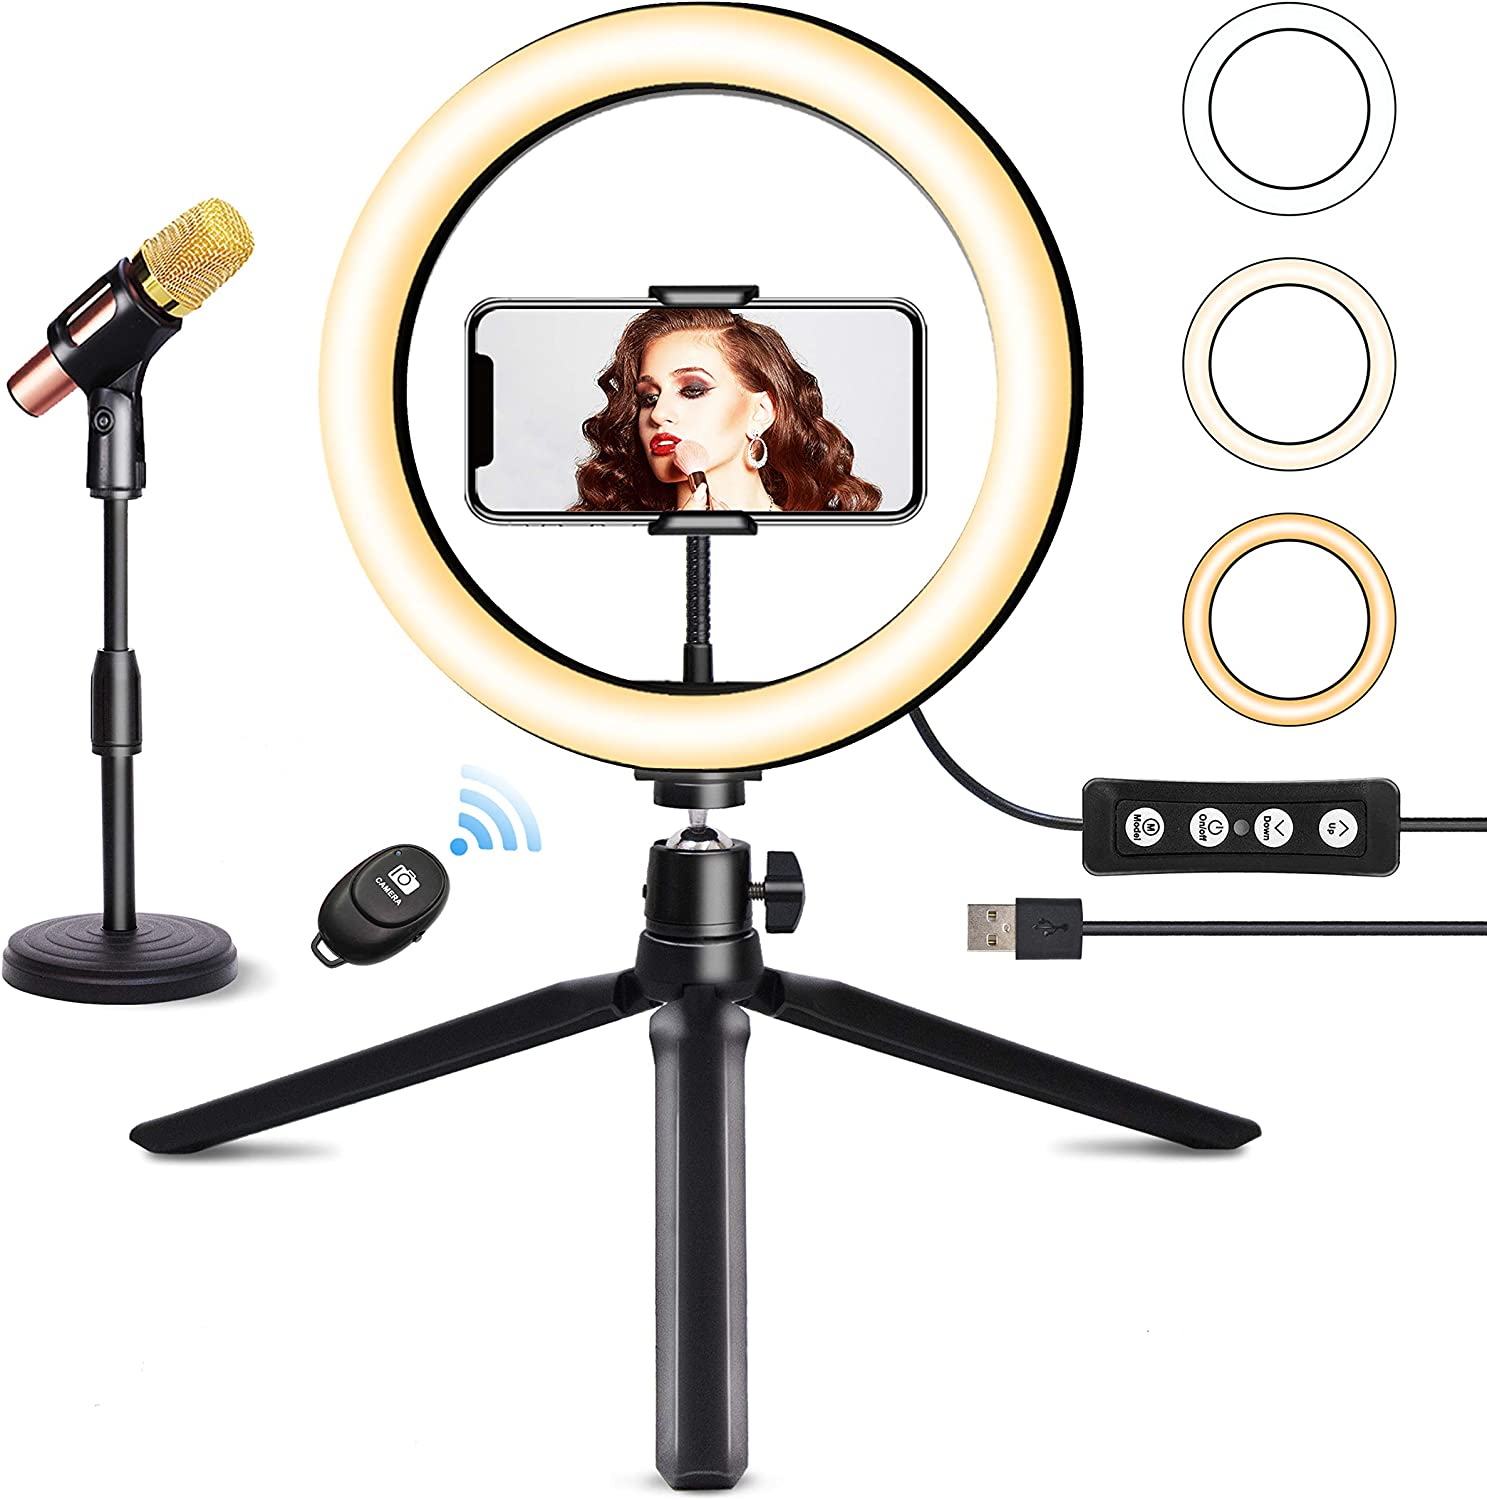 "10"" Ring Light with MIC Stand & Tripod JOGDRC Cellphone Holder for Live Streaming Makeup Photography, Mini LED Camera Ringlight for YouTube Video/Photography Compatible with iPhone iOS Android"